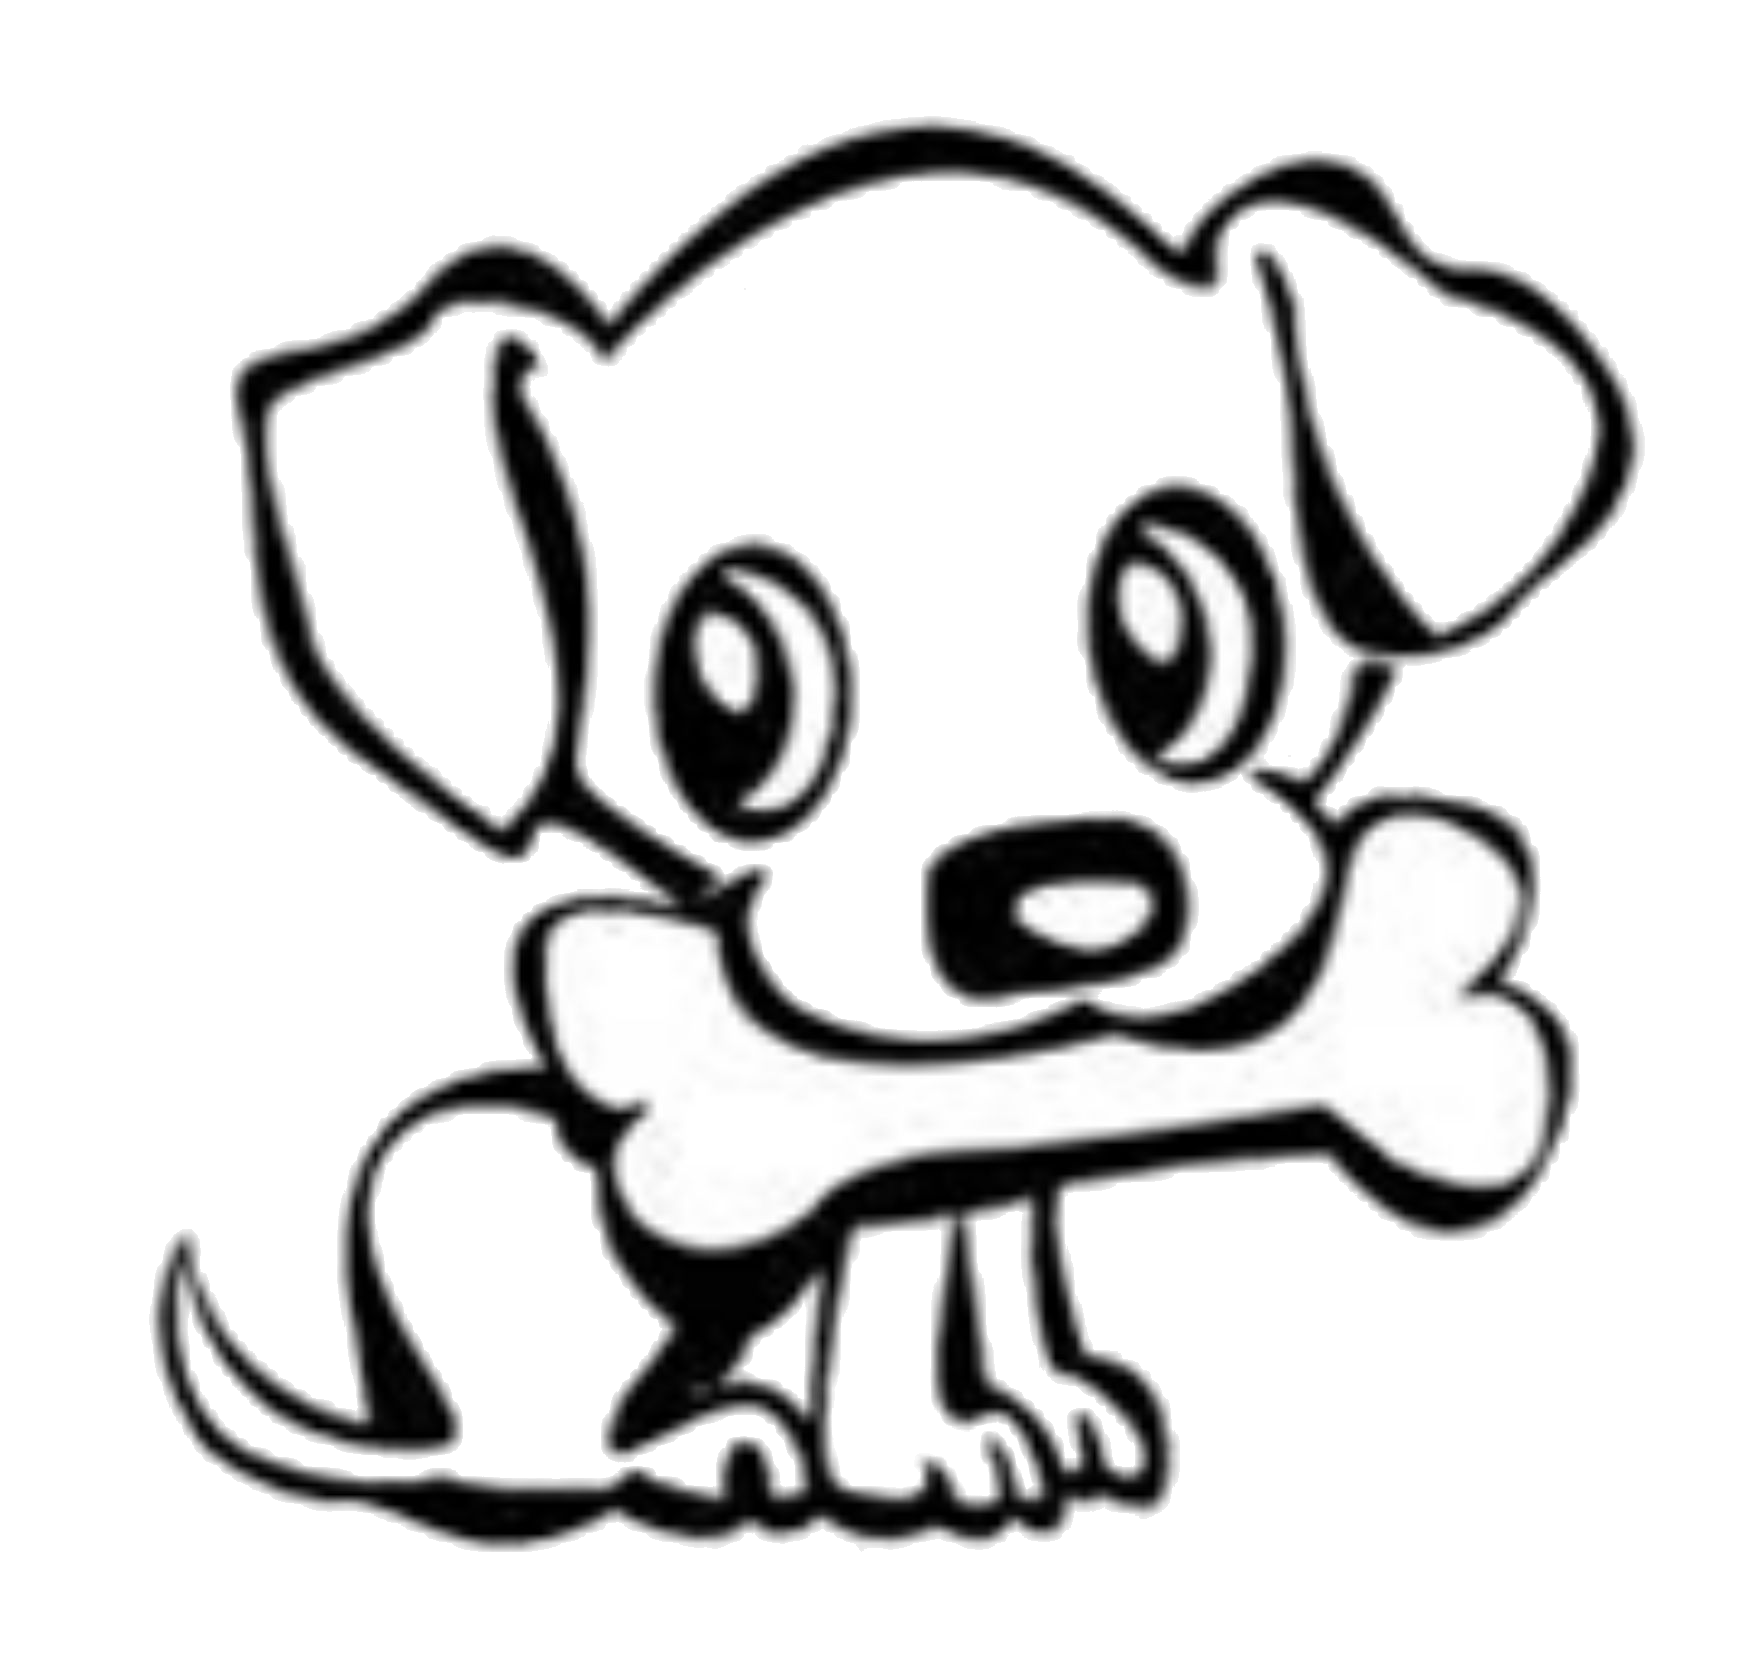 Cute animal outline png. Dog silhouette at getdrawings